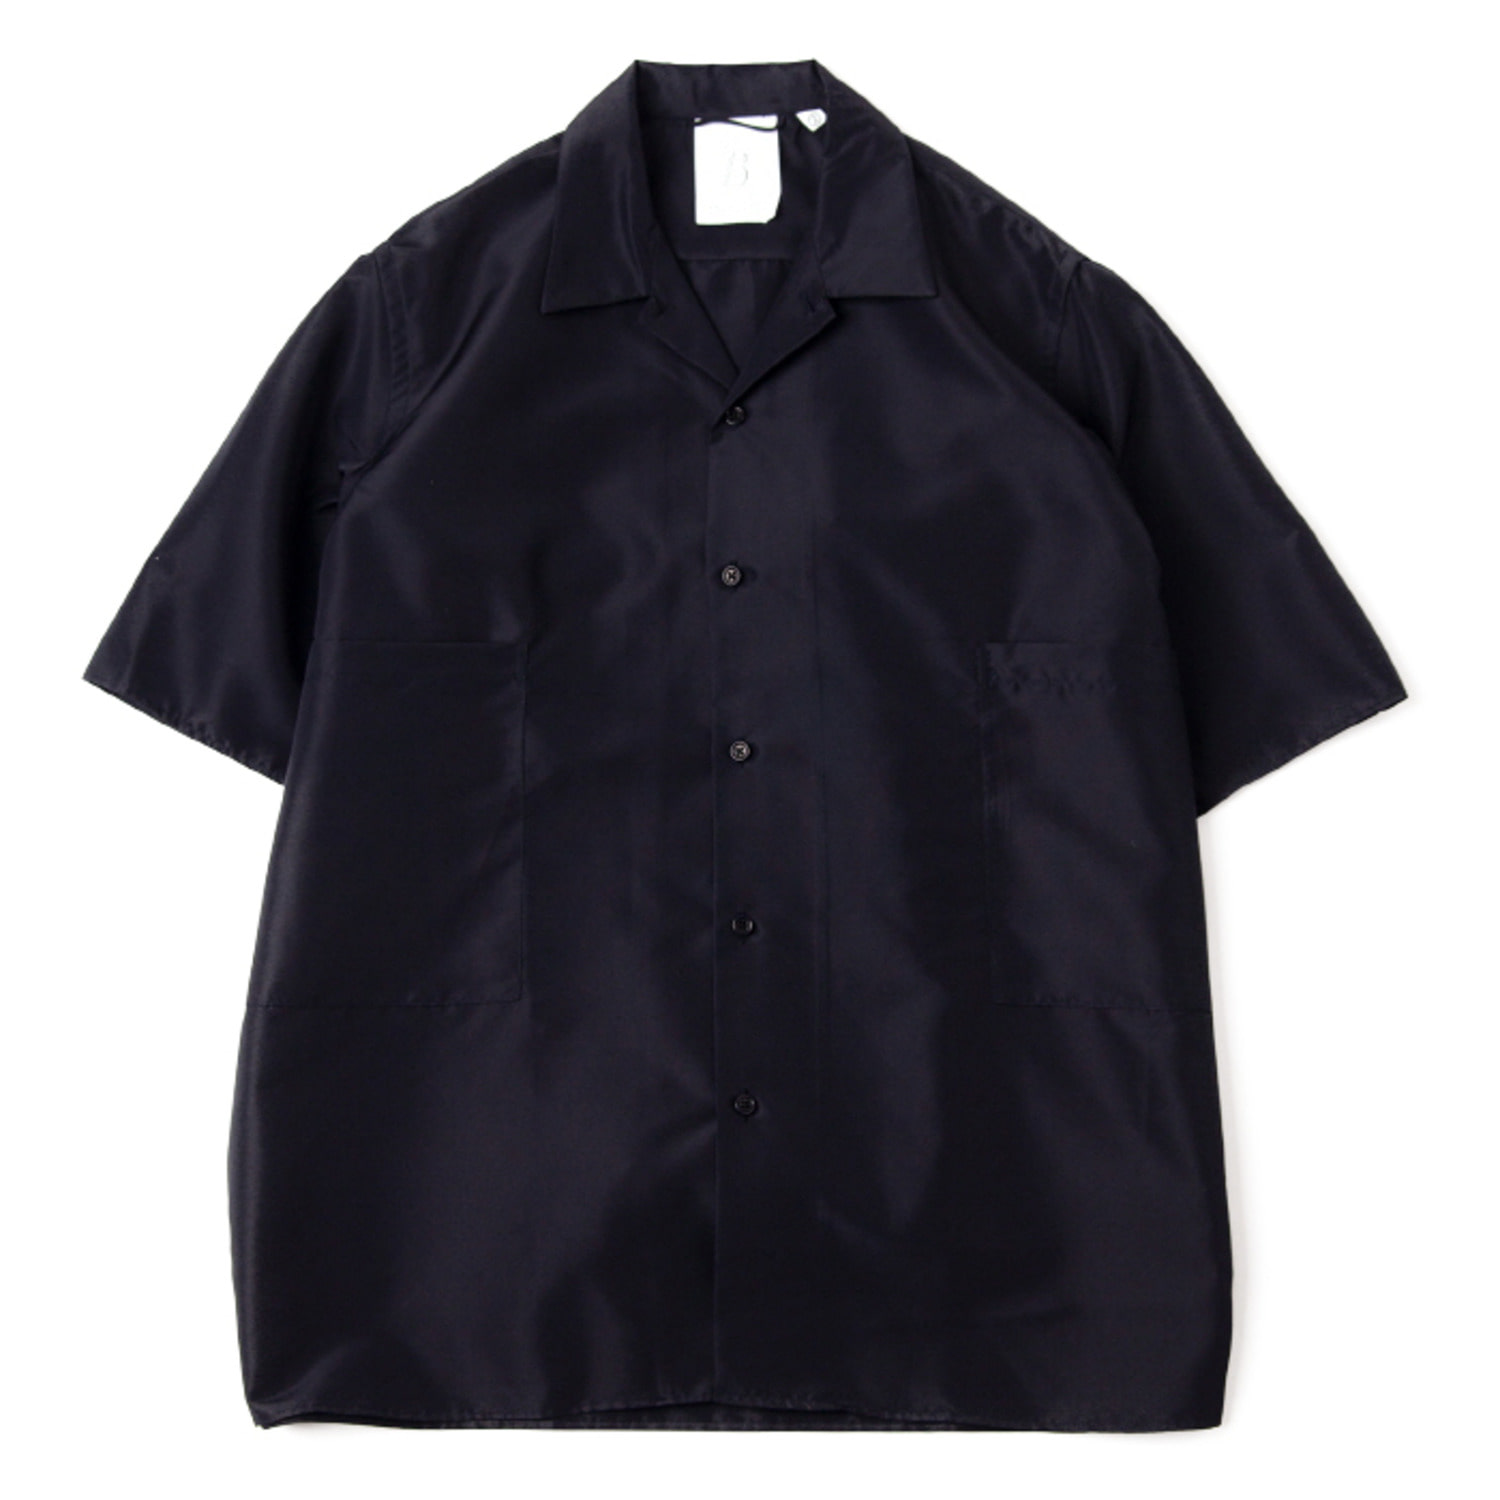 Convertible Collar Shirts 02 (Navy)